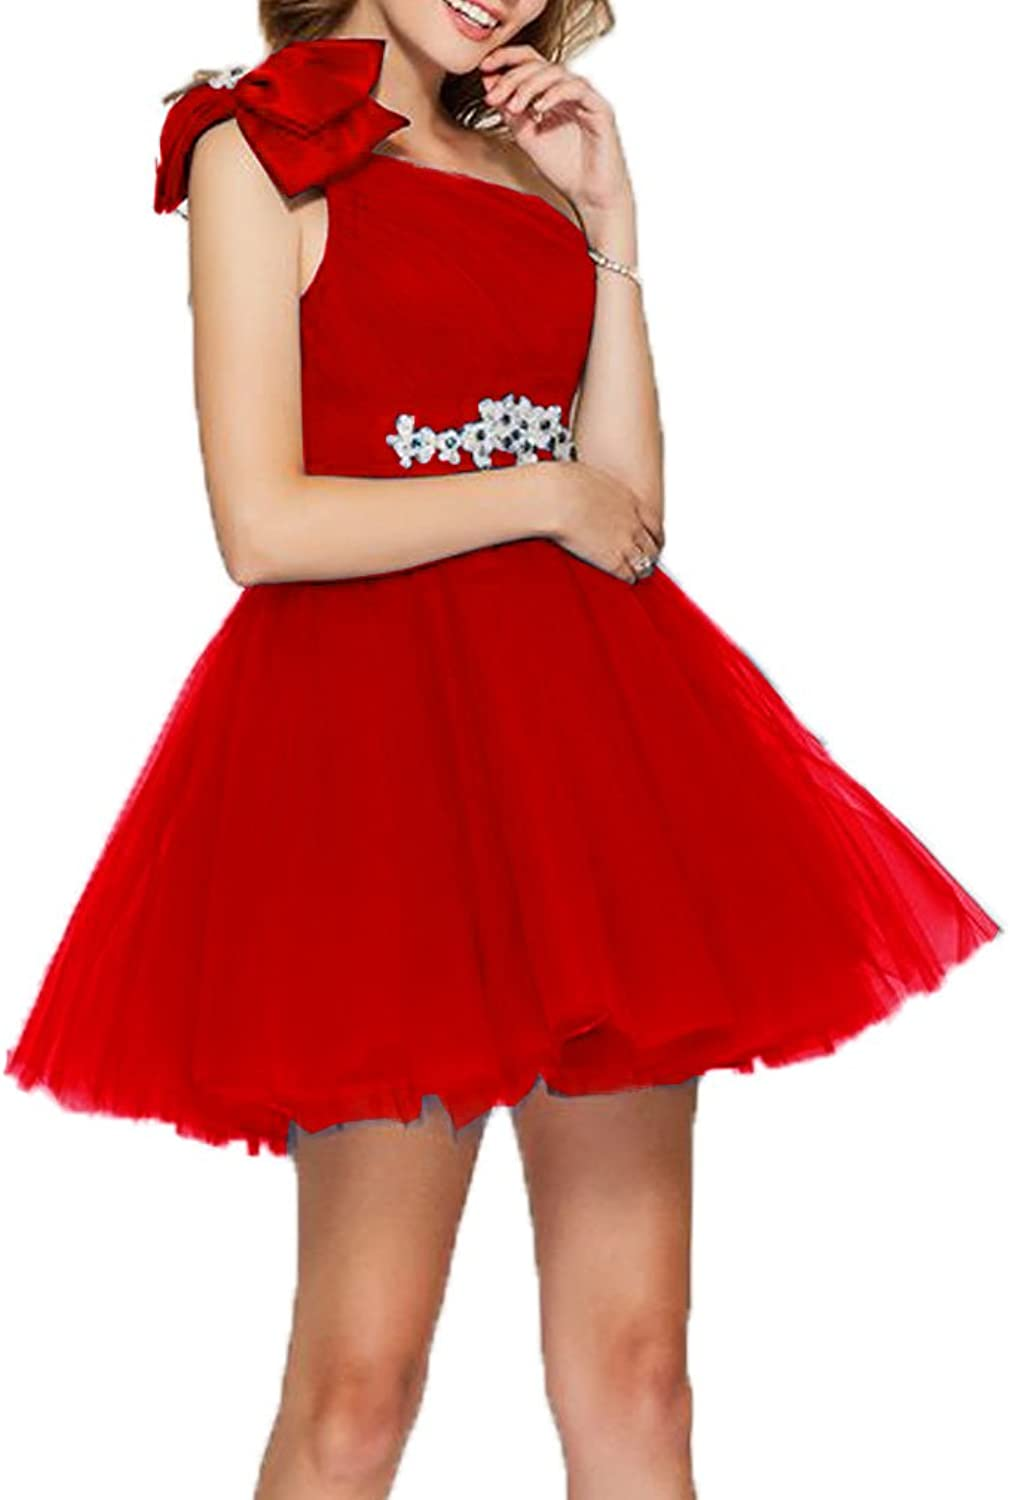 Fashionbride Womens Short Cocktail Party Dress One Shoulder with Bow Homecoming